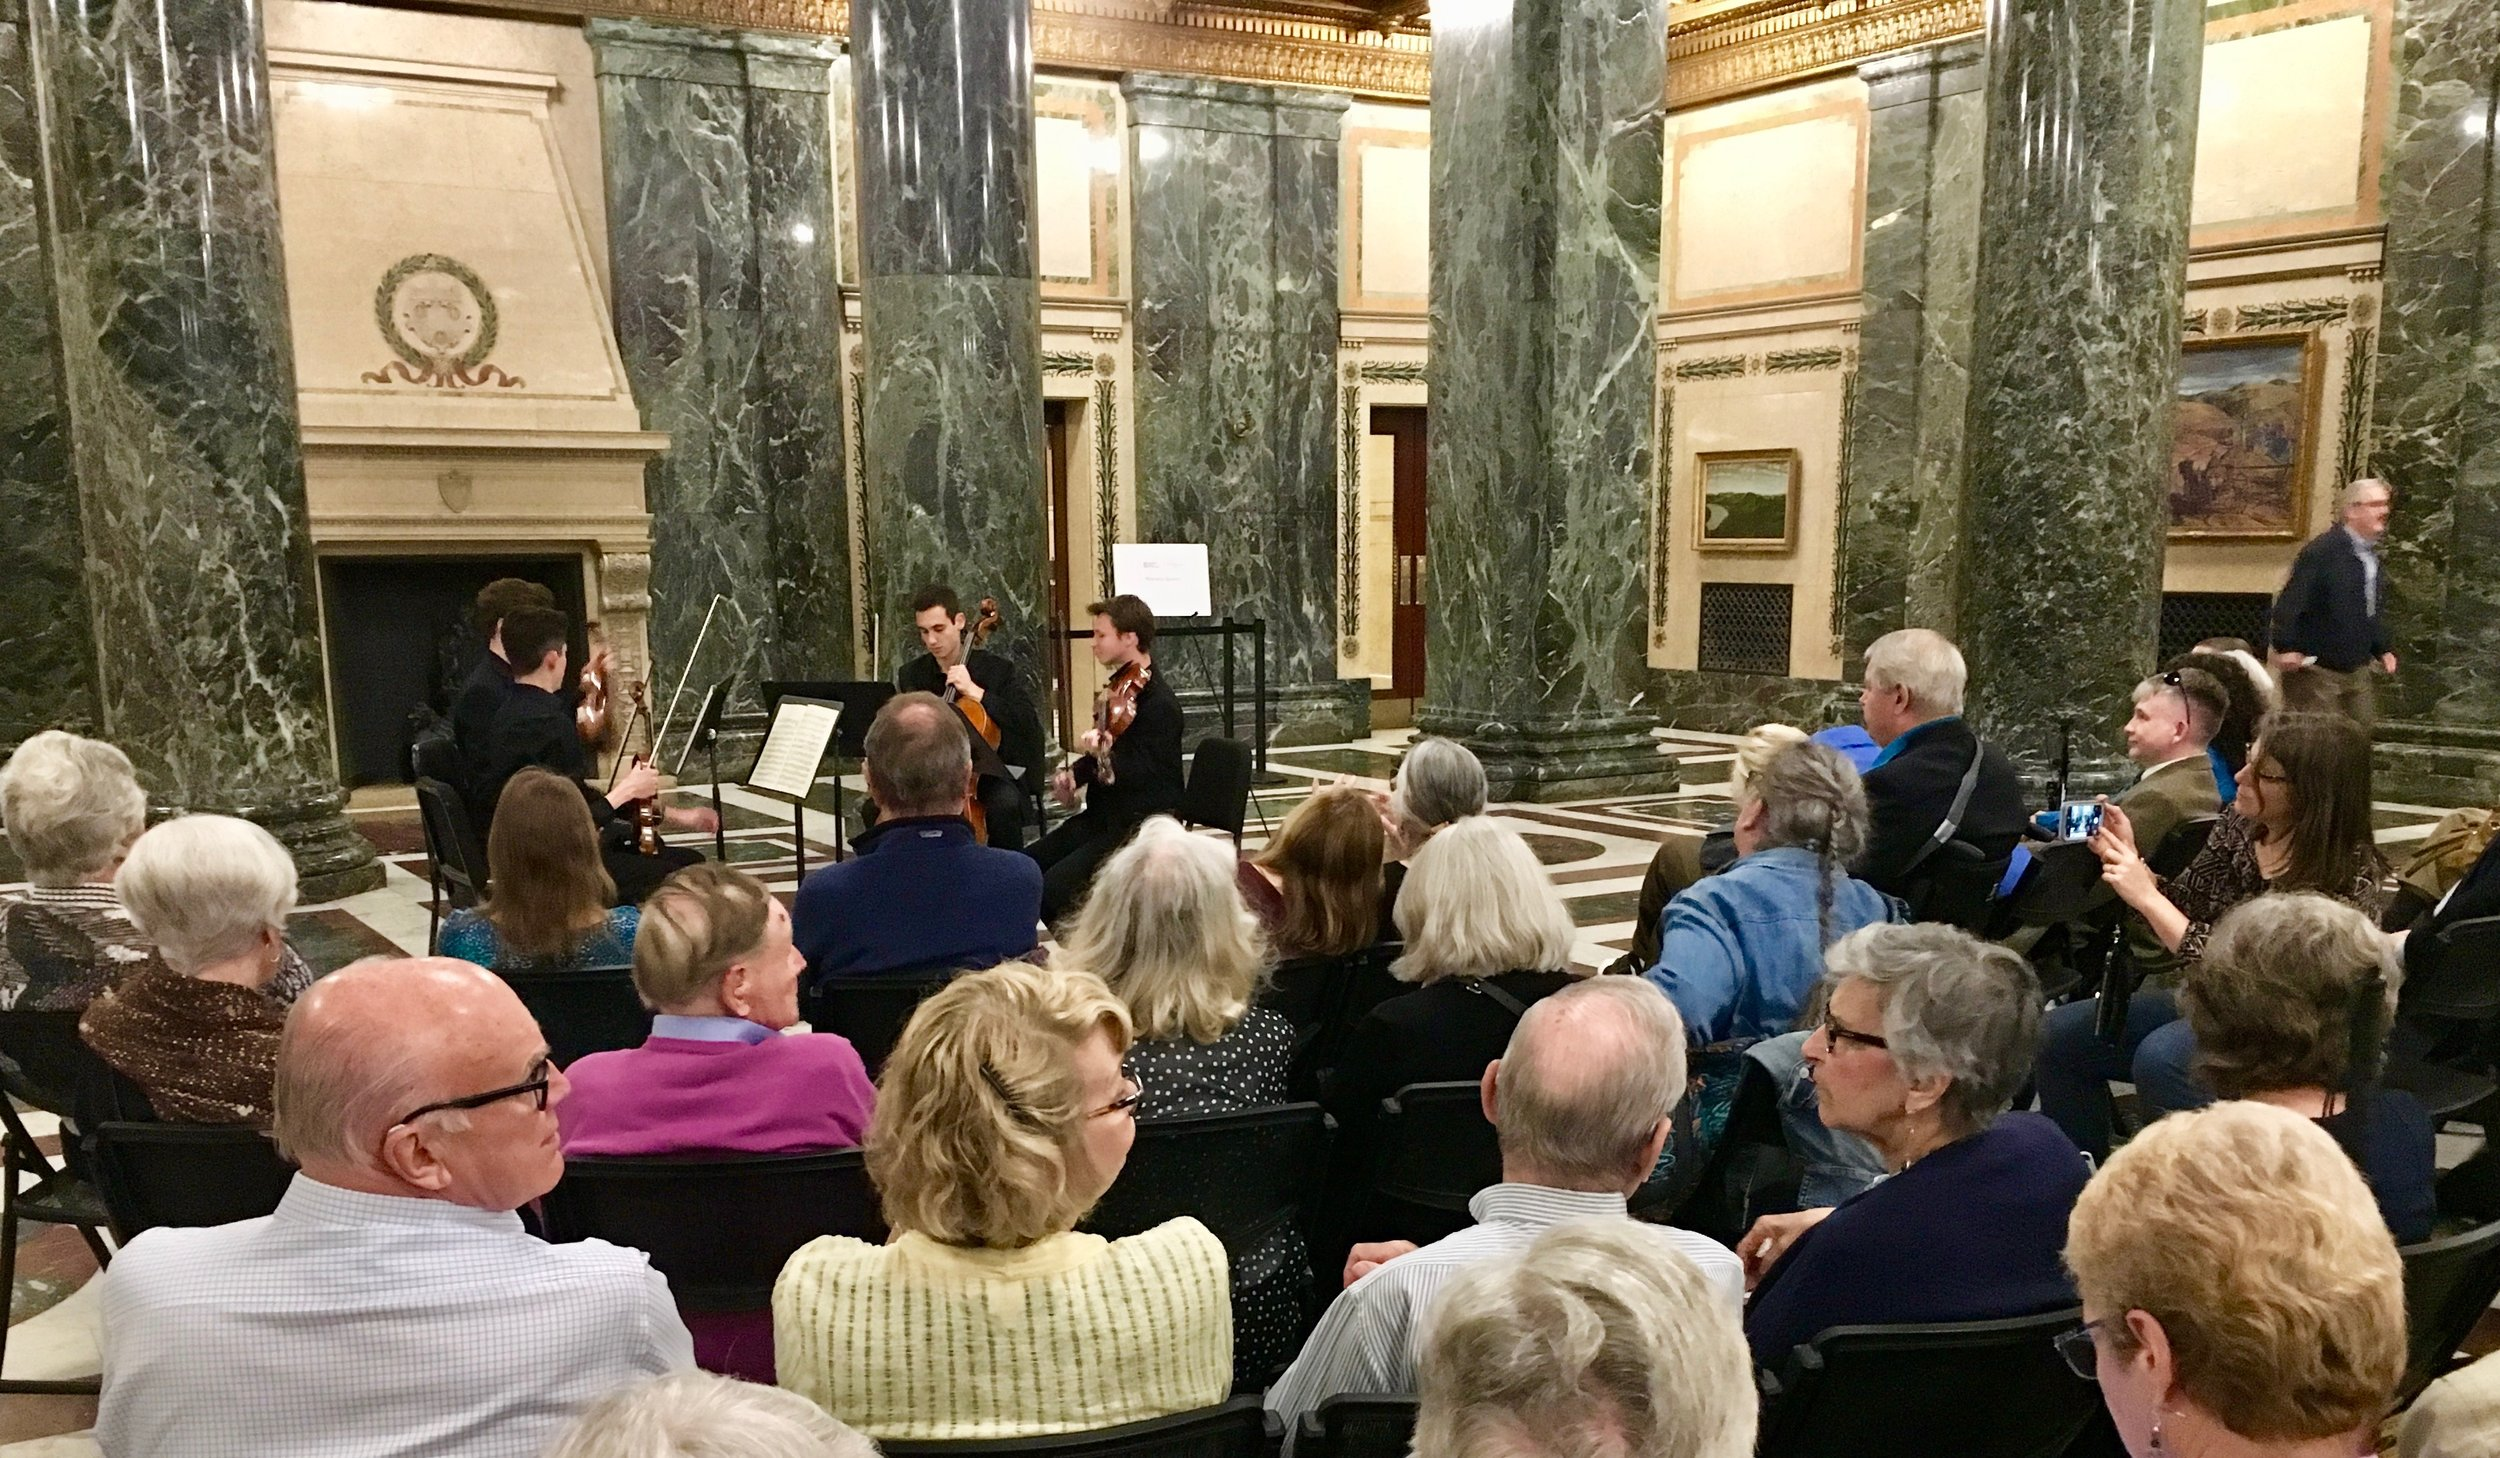 Chamber Music Pittsburgh - Spring 2020 - Dates TBATwo of our top chamber groups will have the opportunity to perform pre-concert for this prestigious chamber music series, which presents top chamber musicians from around the world. Concerts begin at 7:30pm, pre-concert lobby entertainment begins at 7:00pm.